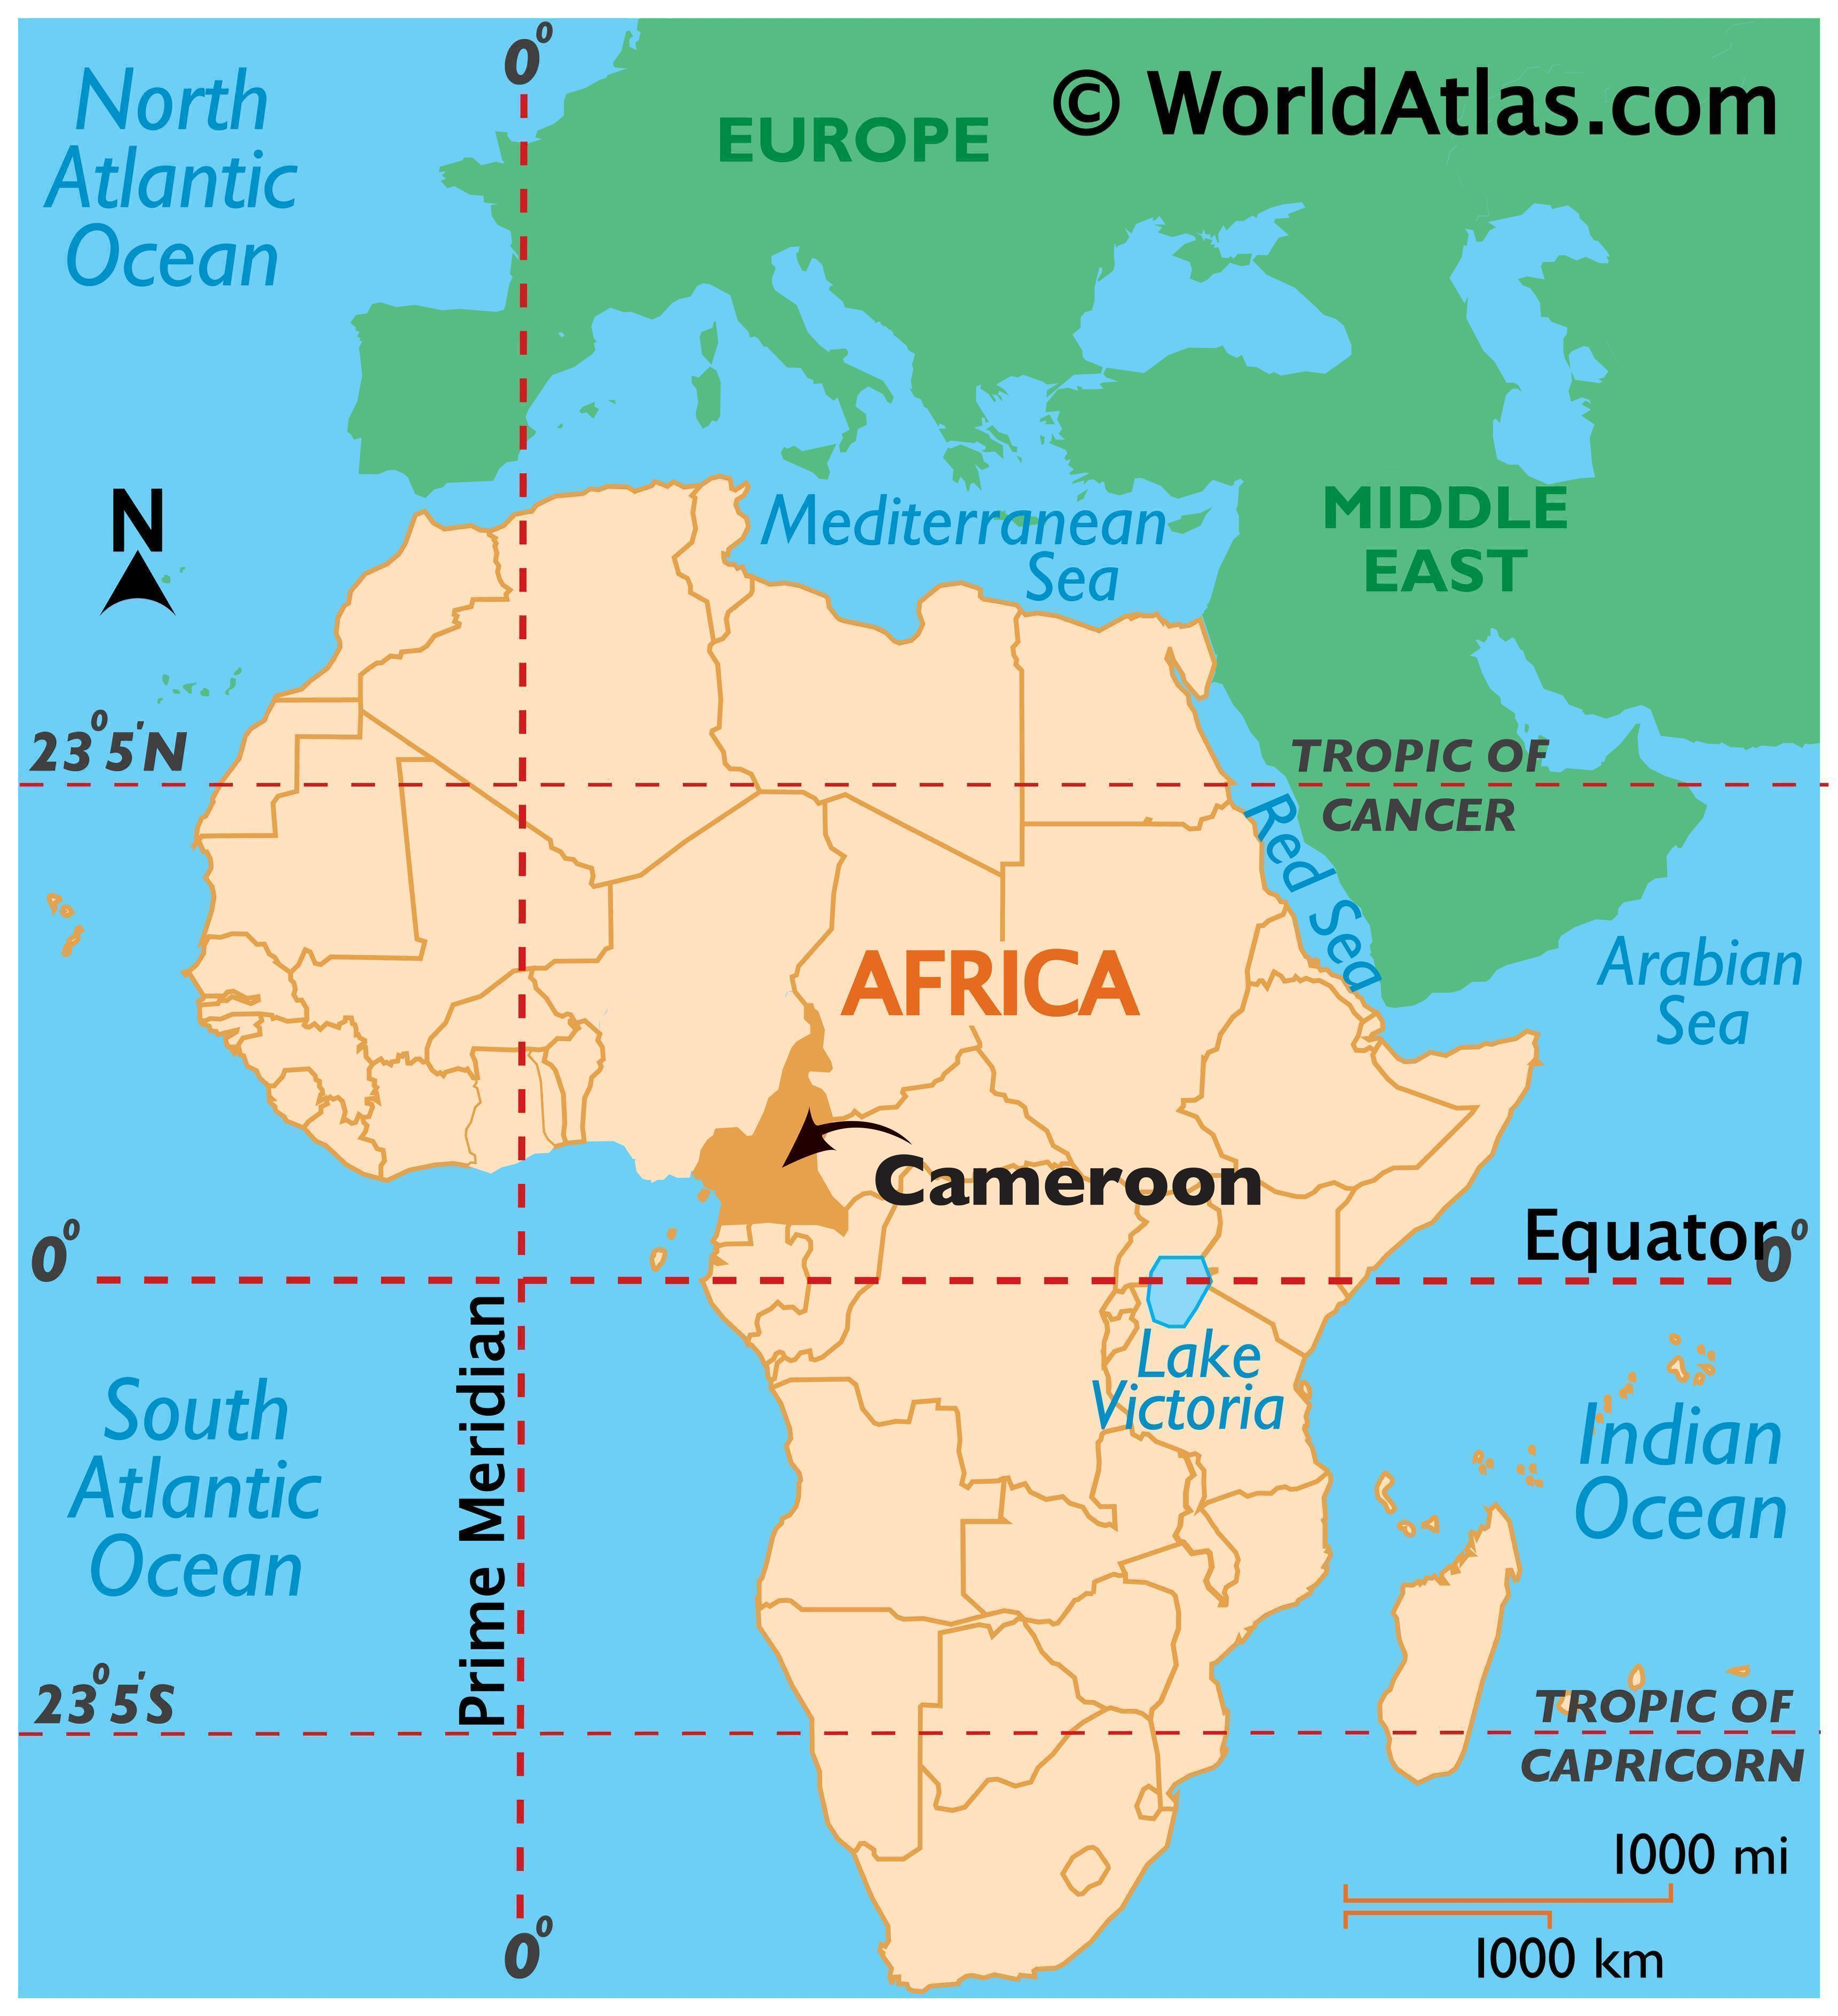 Map showing location of Cameroon in the world.